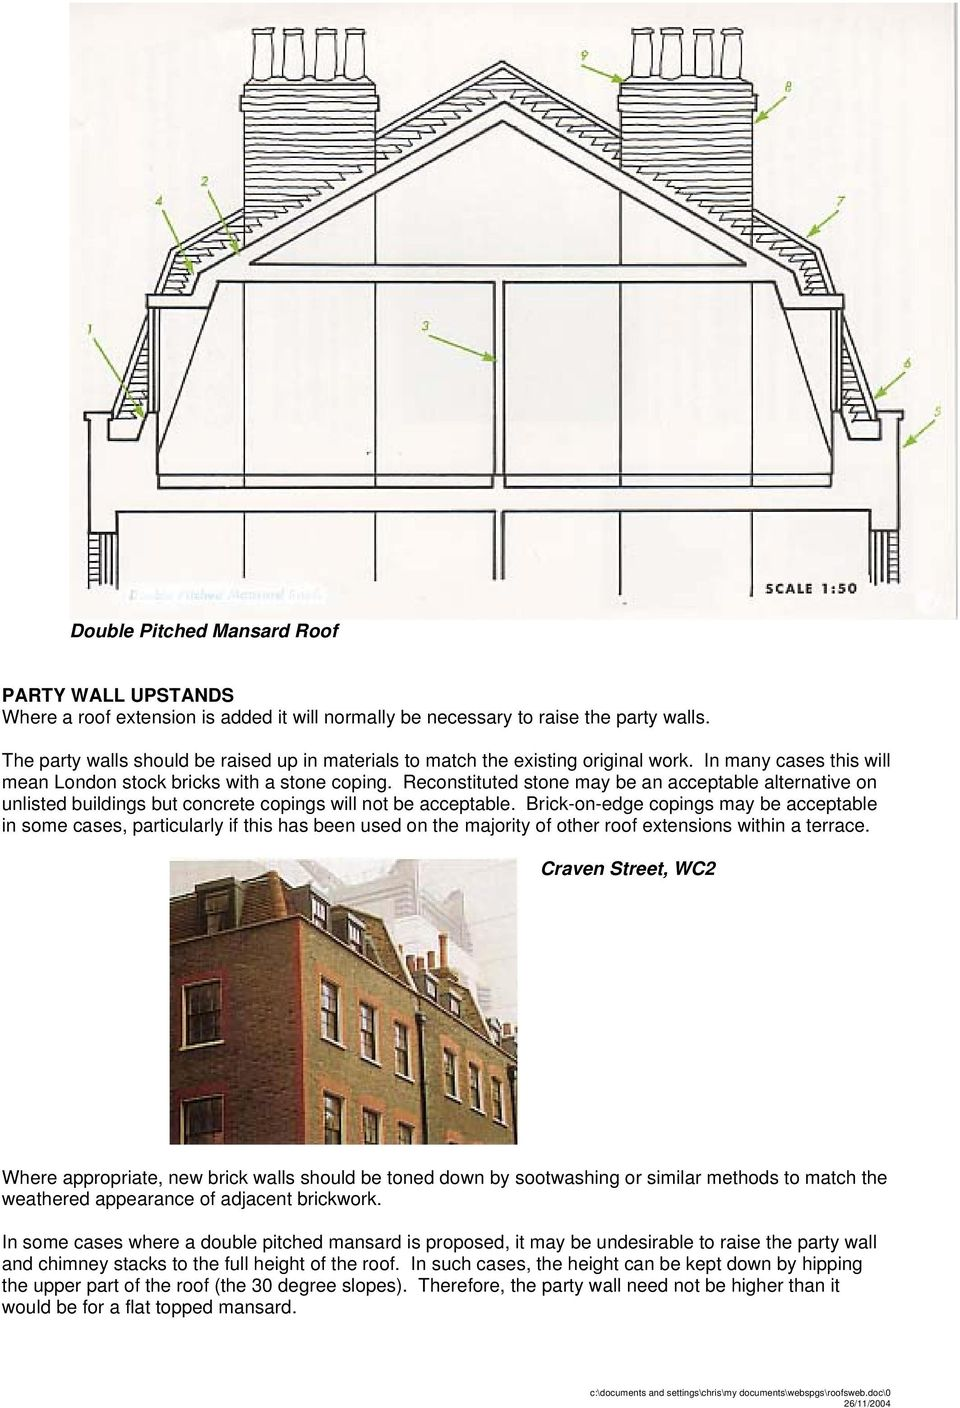 Roofs A Guide To Alterations And Extensions On Domestic Buildings Pdf Technical Structural Diagram Of Double Mansard Roof Glazing Infill Reconstituted Stone May Be An Acceptable Alternative Unlisted But Concrete Copings Will Not